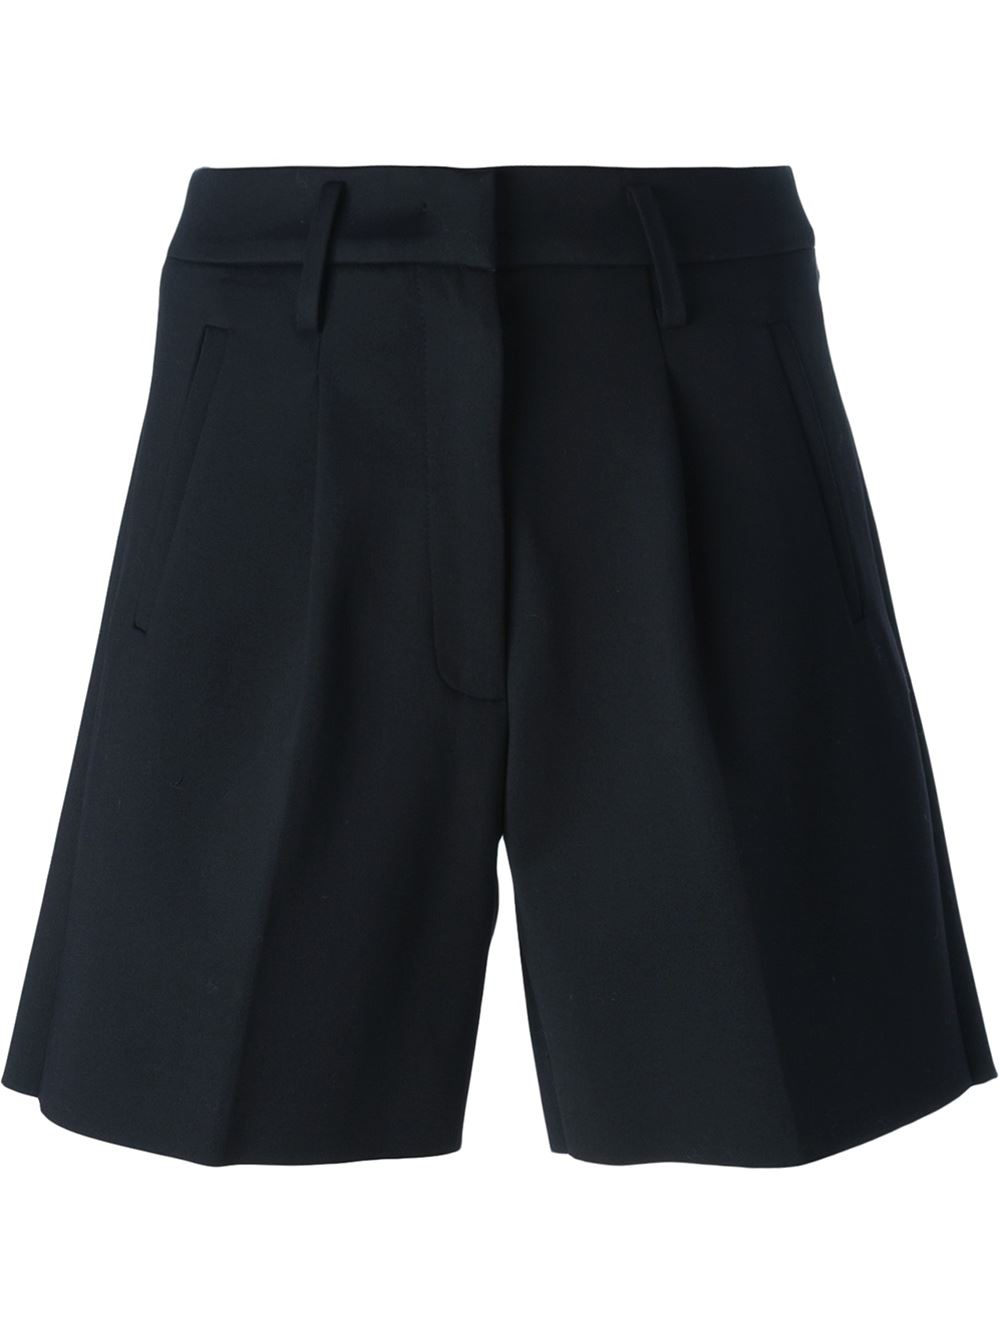 Discover smart & tailored shorts with ASOS. From black city shorts, to tie waist tailored shorts in leather and lace with ASOS.